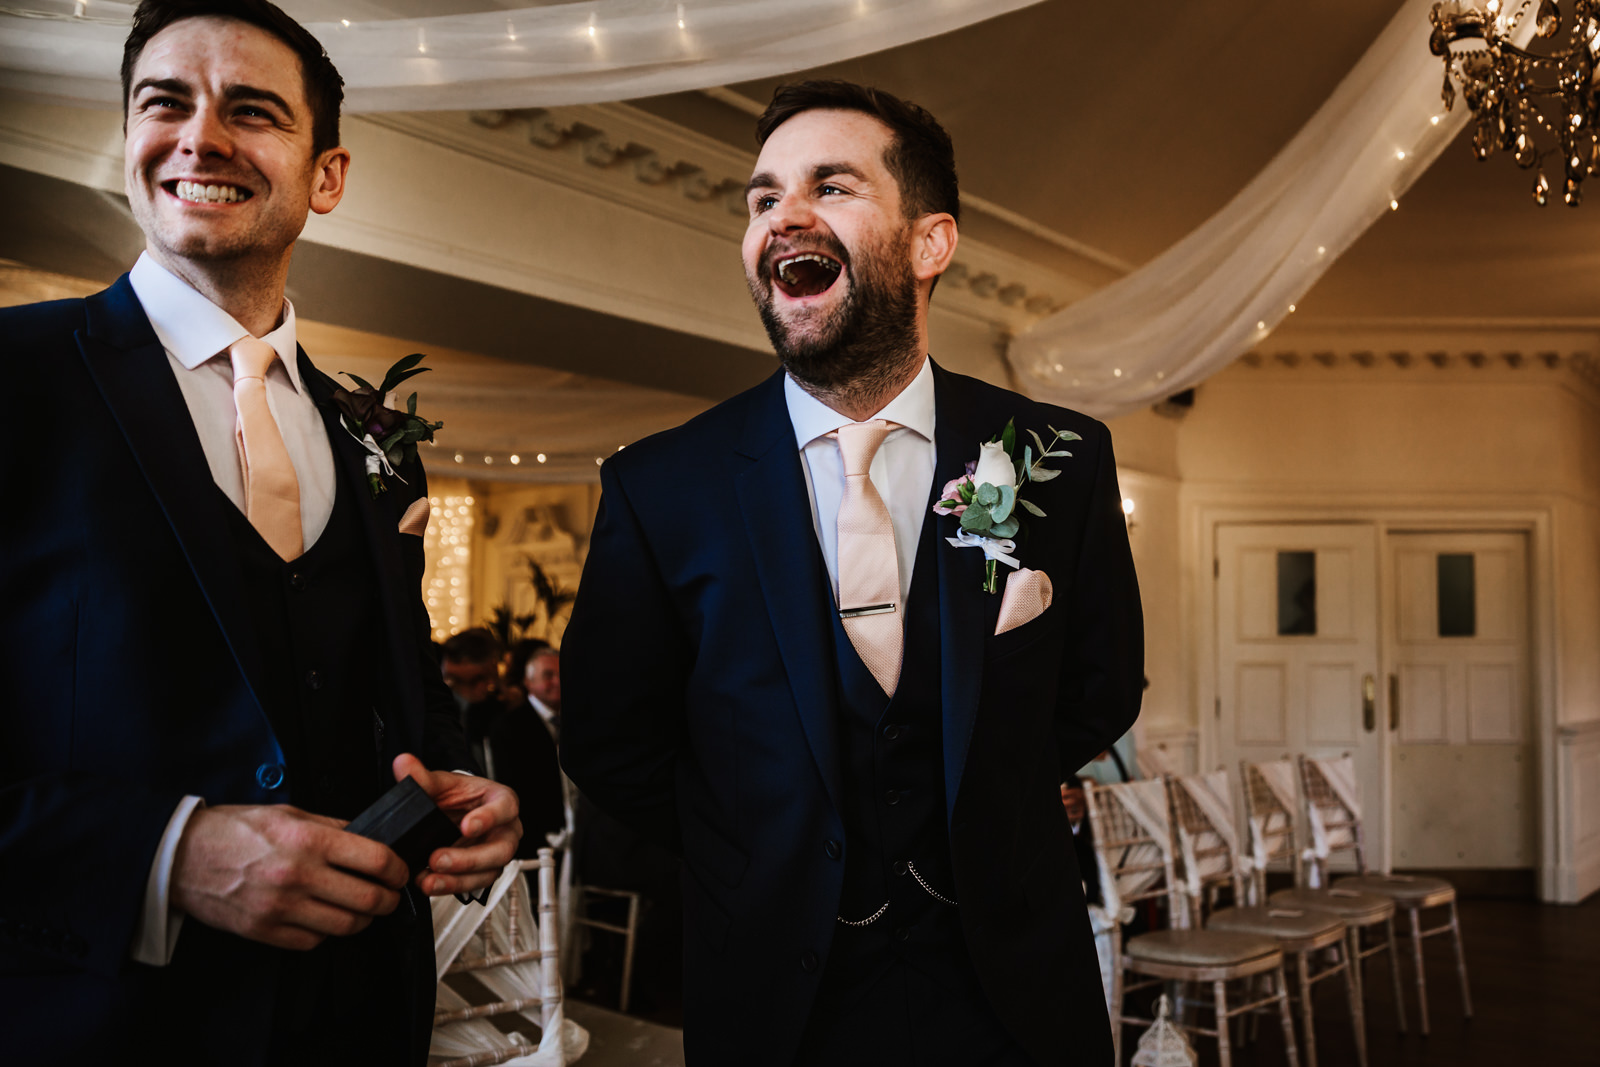 Laughing groom to be